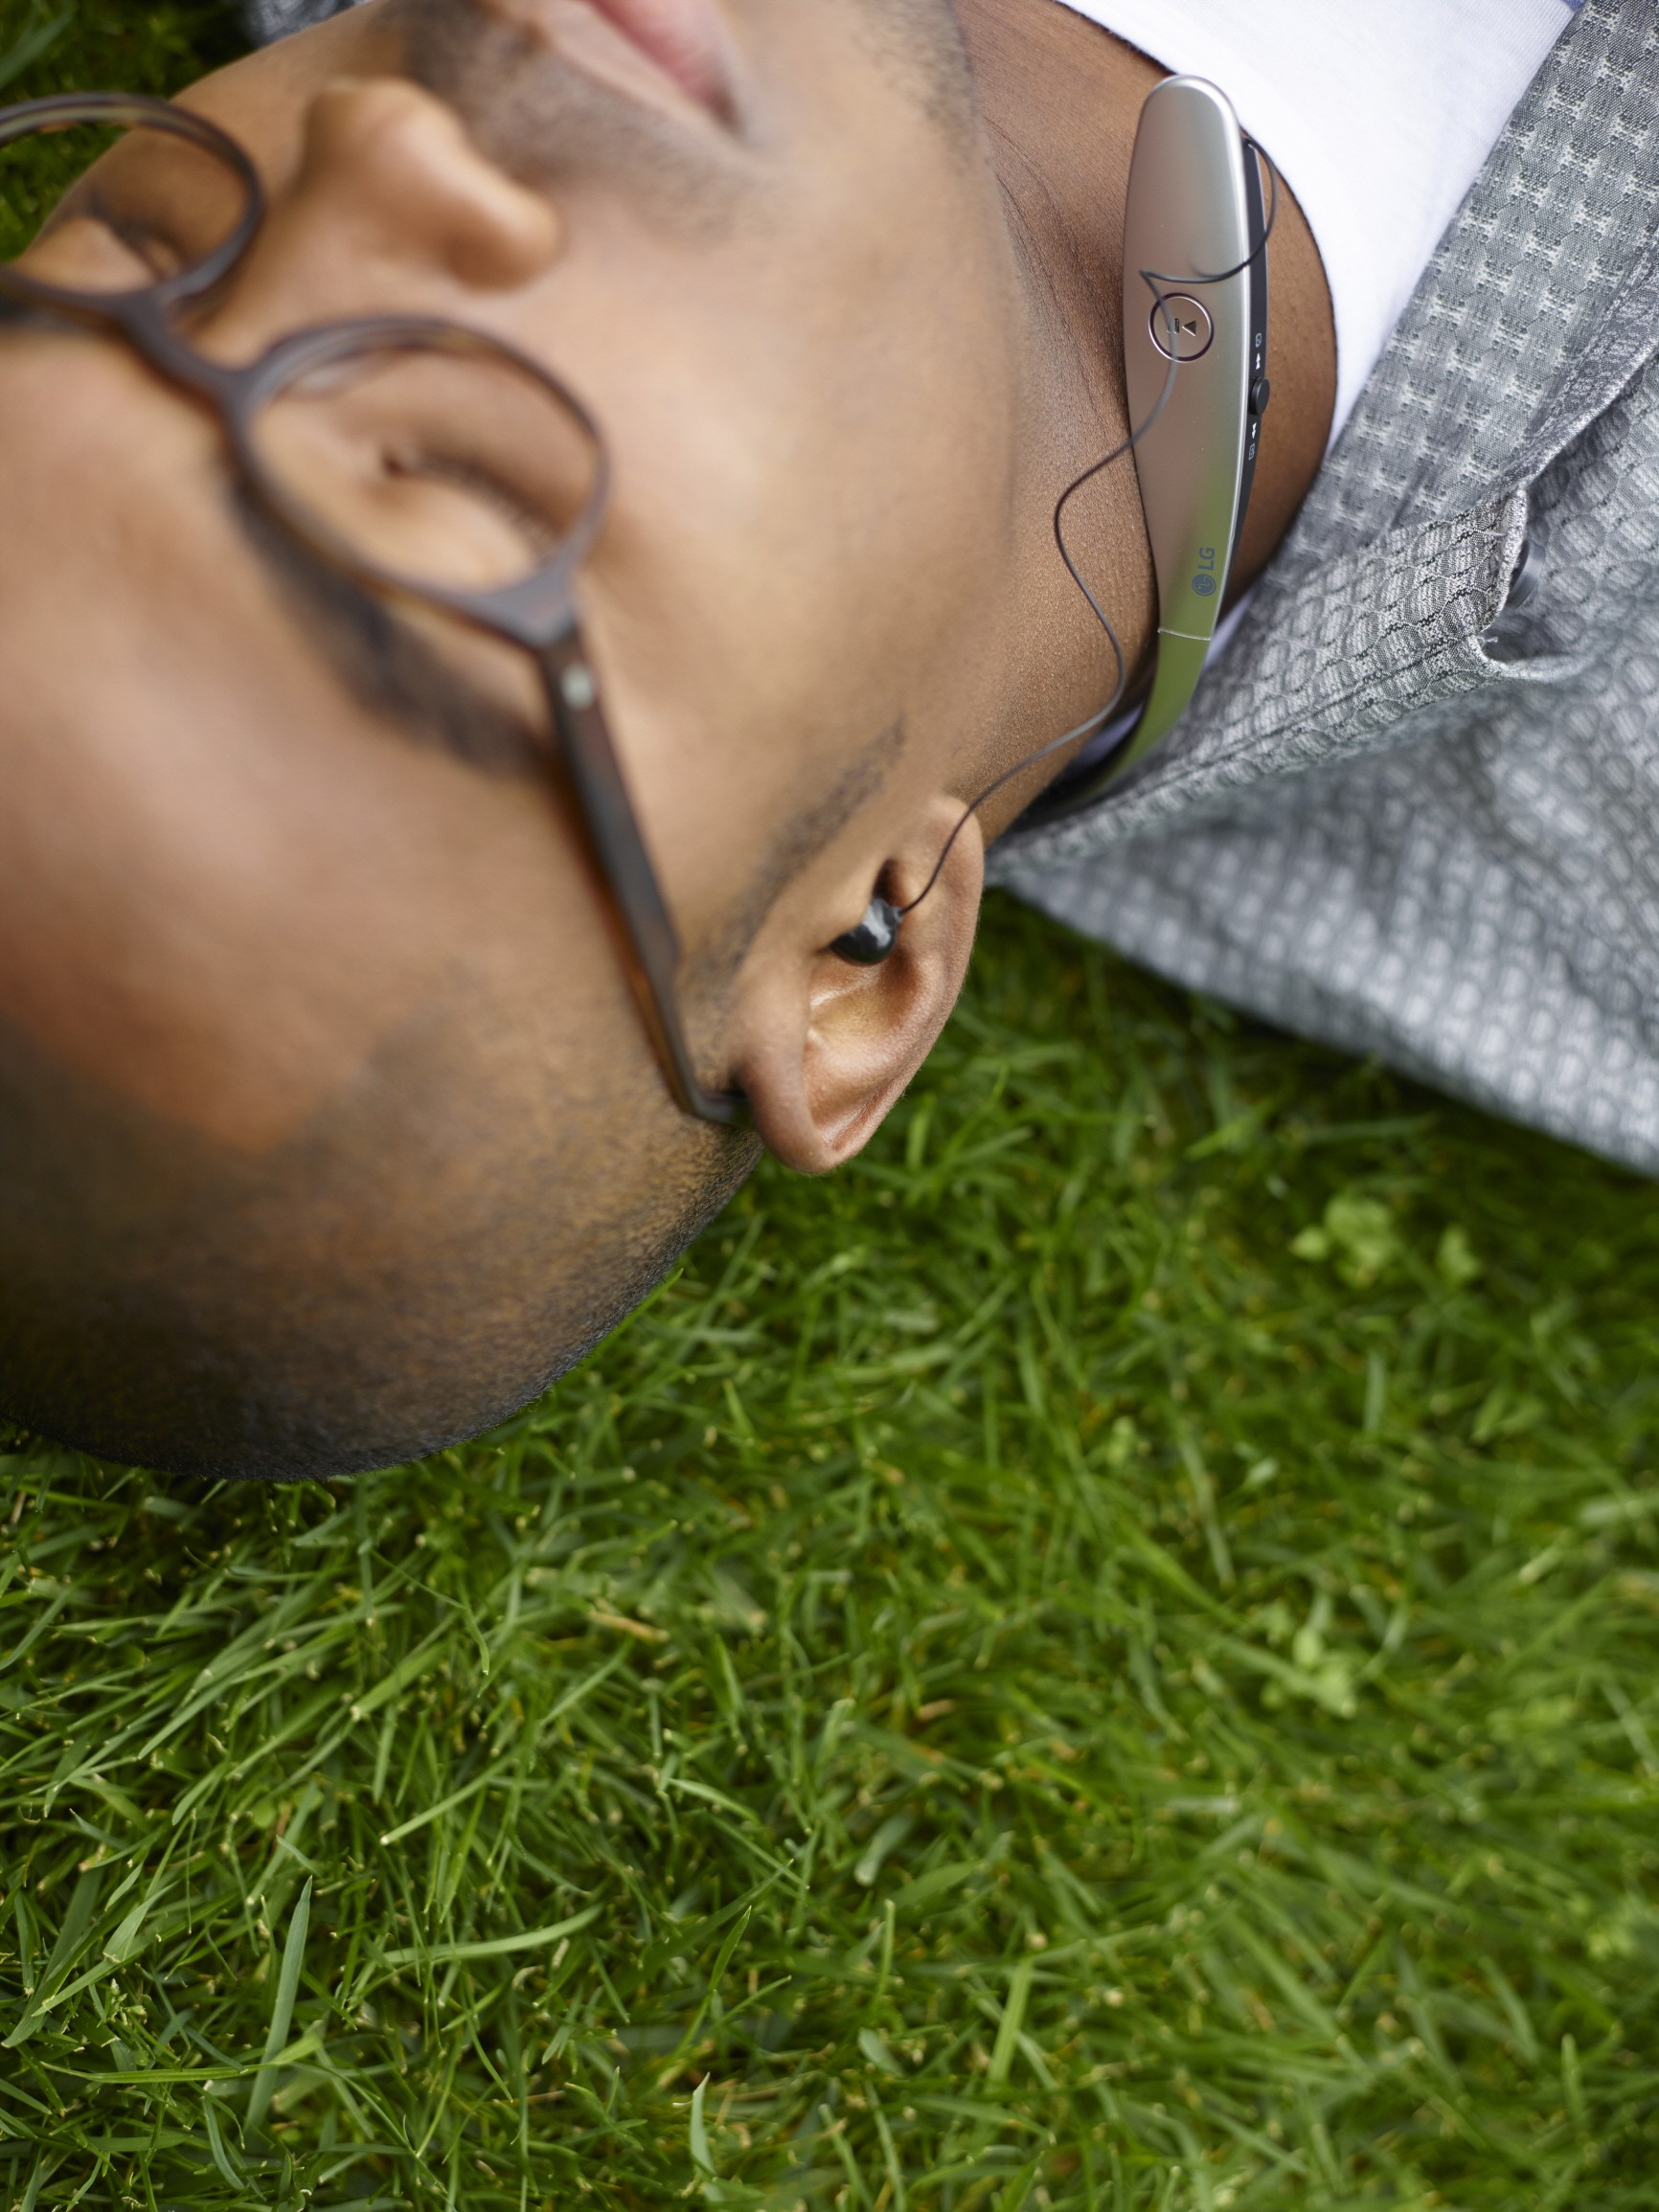 A man enjoying music with the LG TONETM Bluetooth headset while lying in the grass.